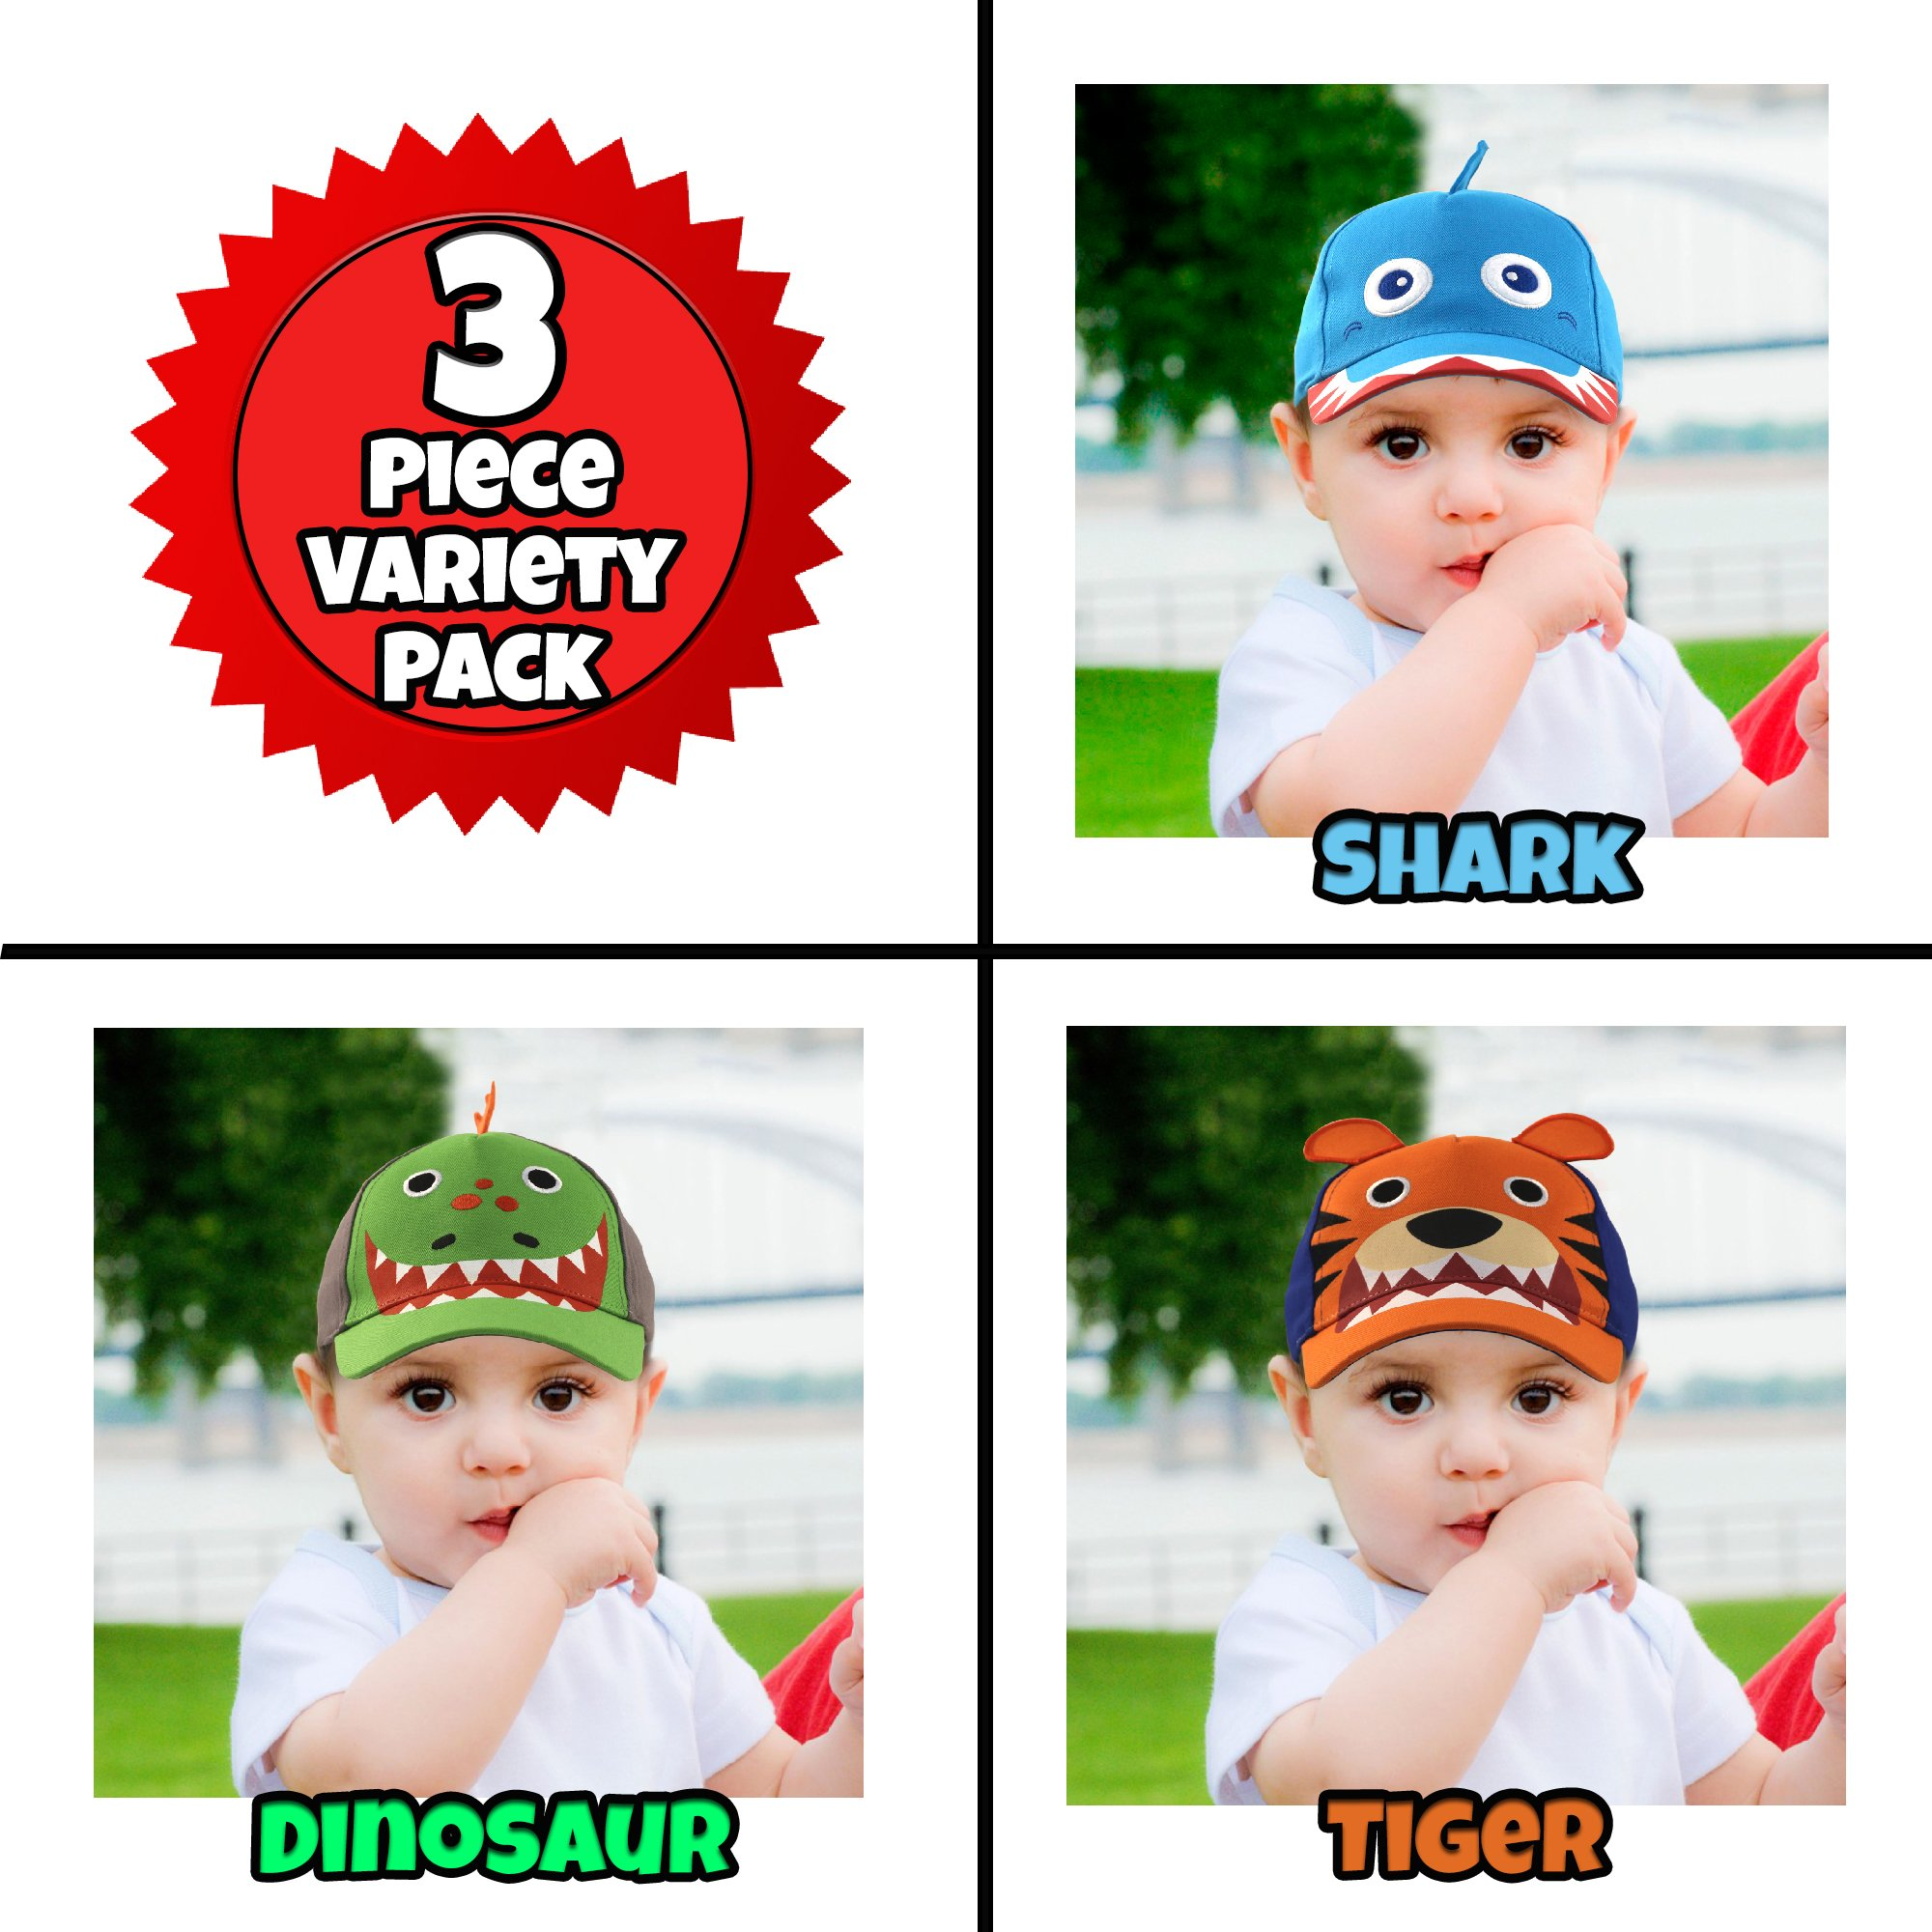 ABG Accessories Toddler Boys Cotton Baseball Cap with Assorted Animal Critter Designs, Age 2-4 (3 Piece Variety Design Pack) by ABG Accessories (Image #4)